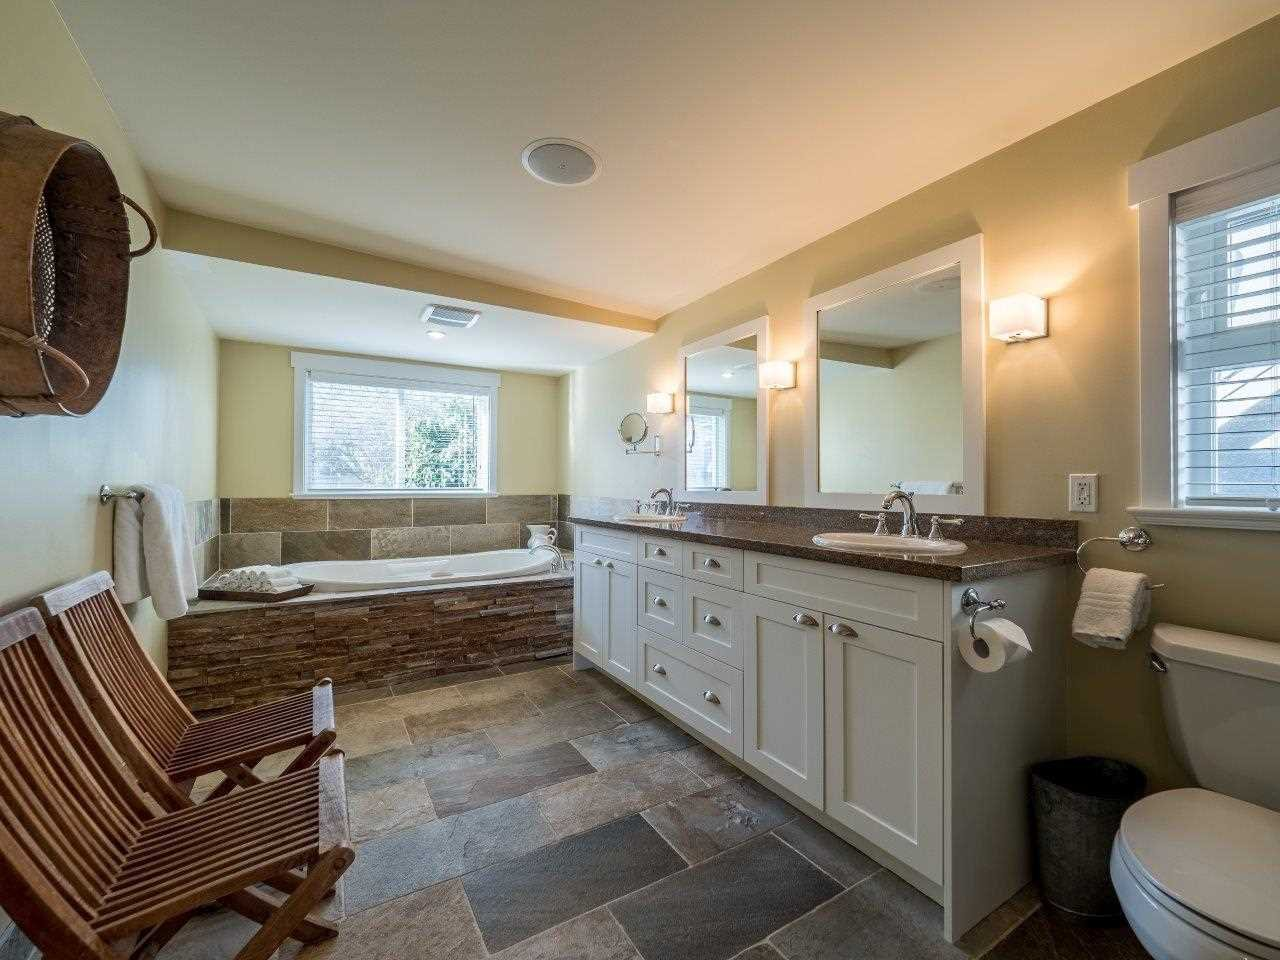 Photo 15: Photos: 345 BEACHVIEW DRIVE in North Vancouver: Dollarton House for sale : MLS®# R2035403